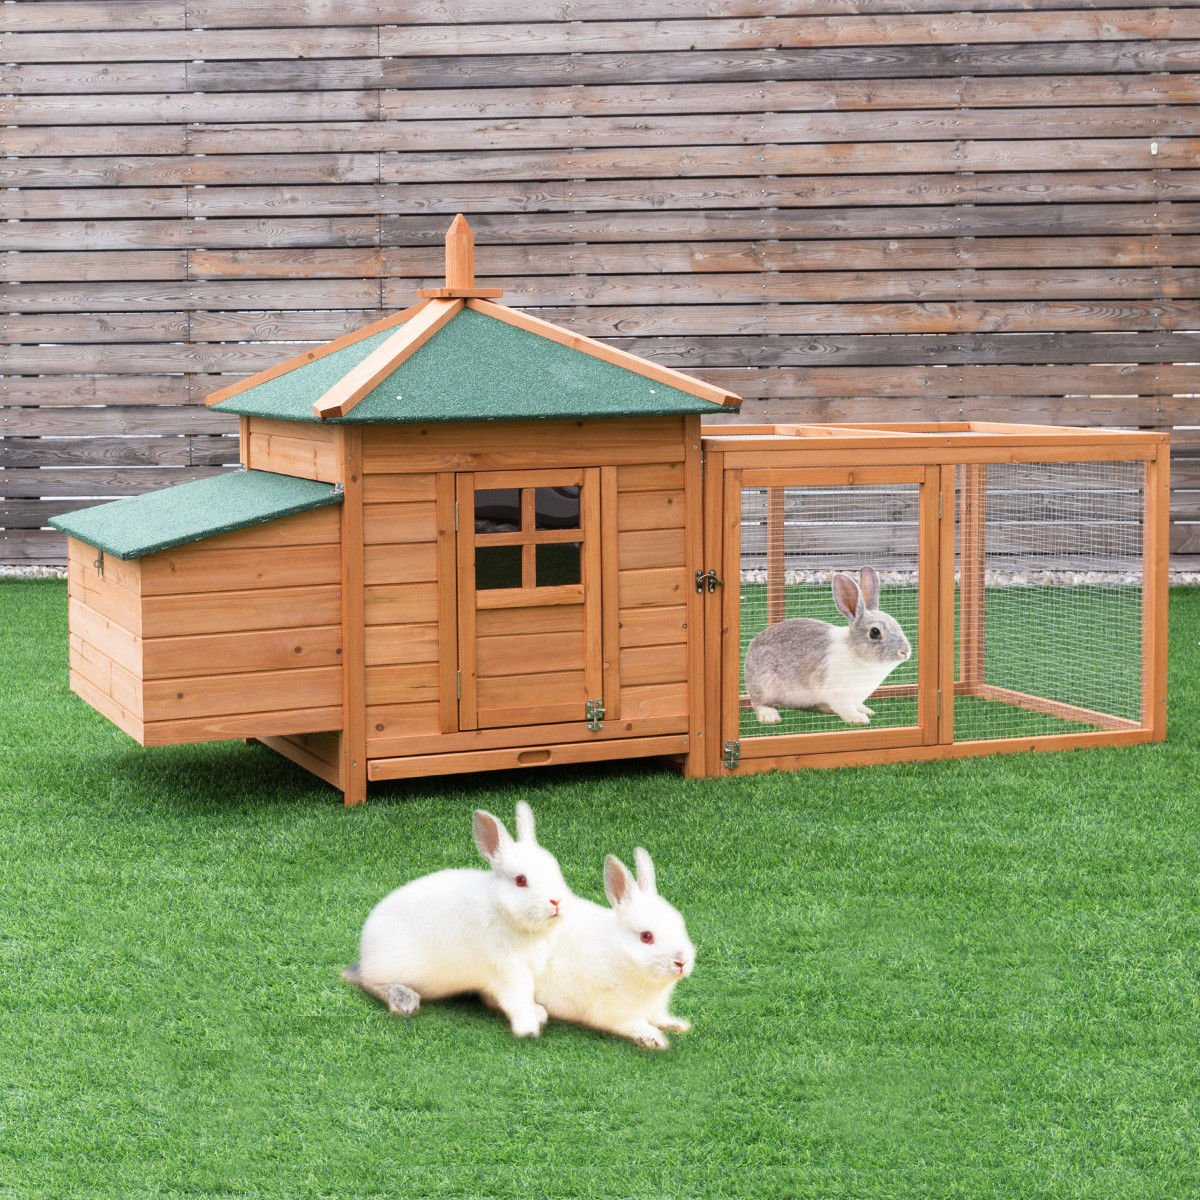 "Tangkula 78"" Chicken Coop Outdoor Garden Backyard Wood Hen House Rabbit Hutch Poultry Small Animal Cage by Tangkula"